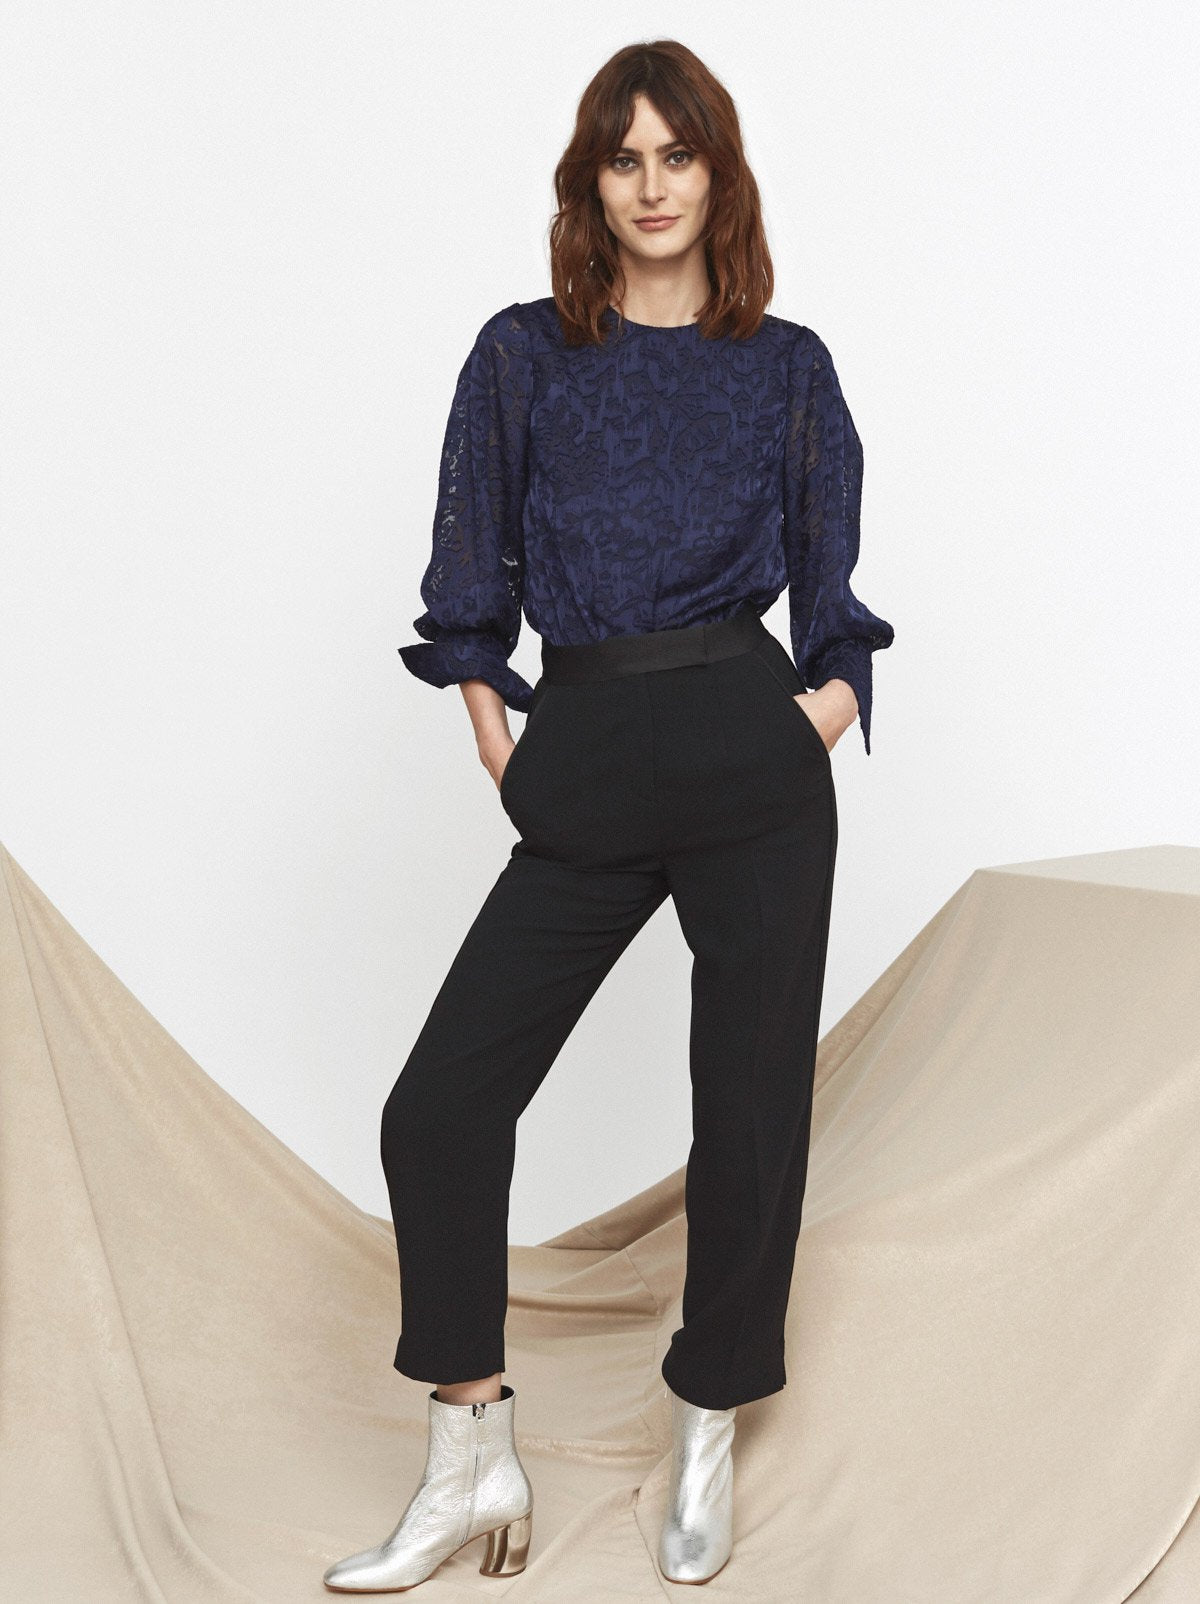 Lorelle Blue Extended Cuff 3/4 Sleeve Top by KITRI